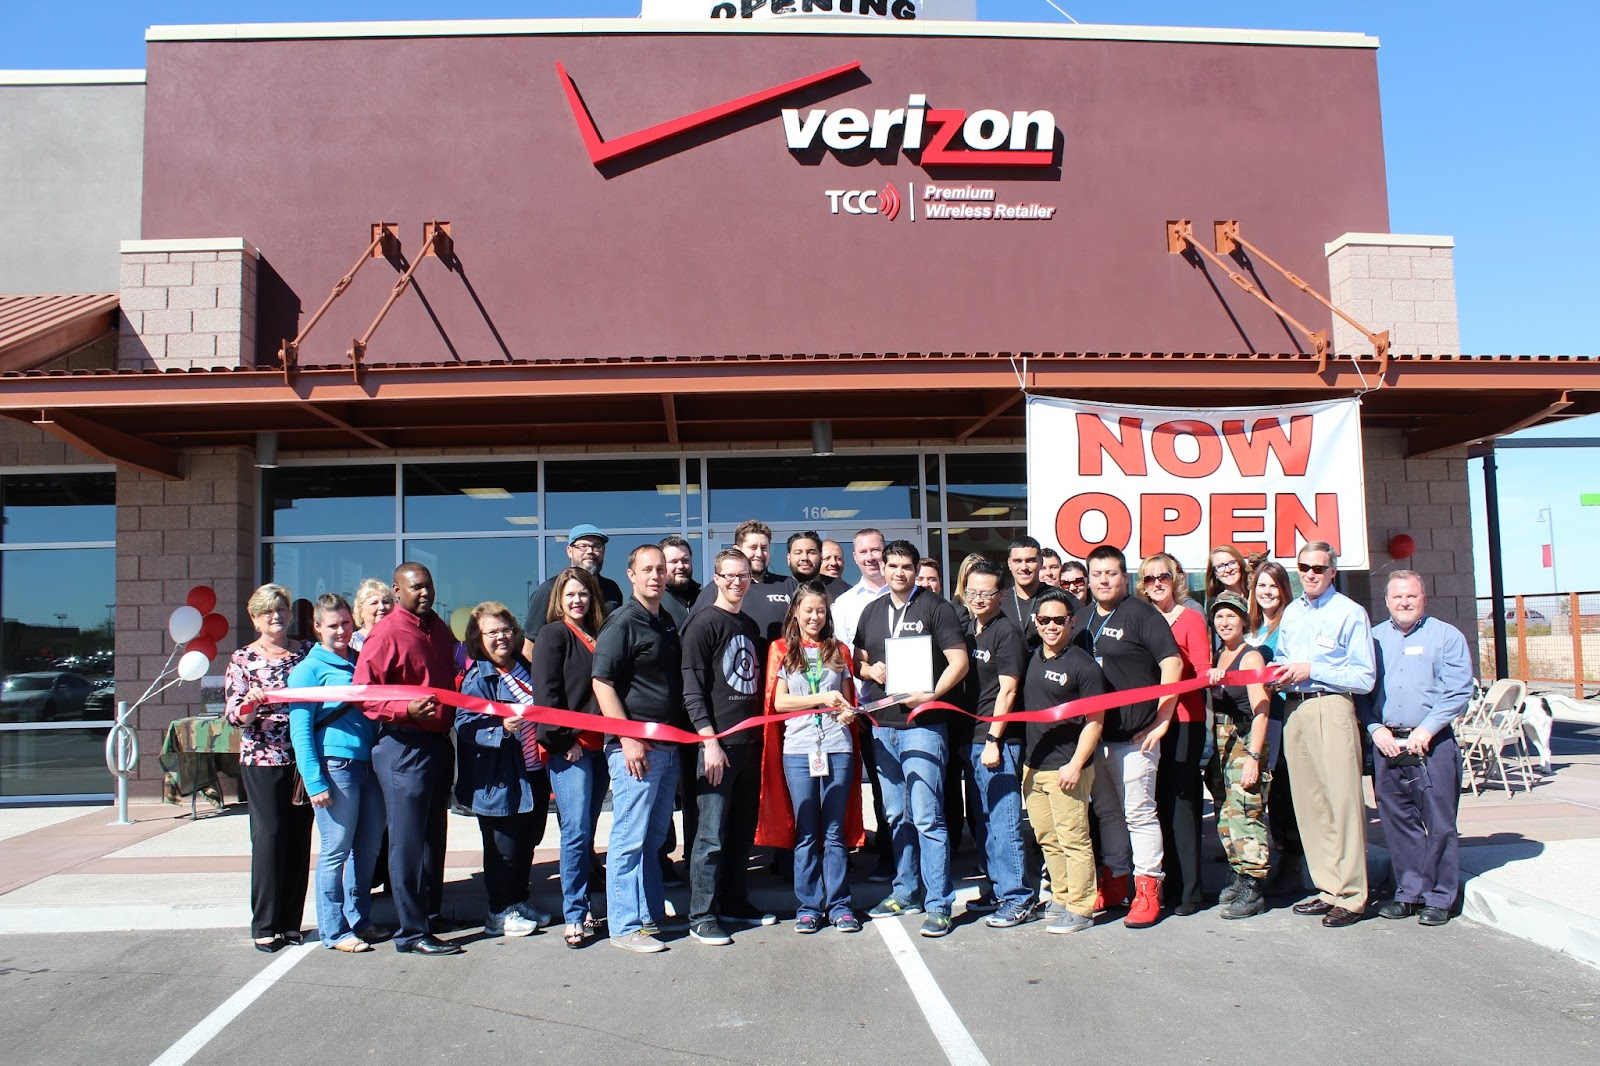 TCC Cellular Connection located at 1580 E. Tucson Marketplace Boulevard #160, 85713, is pleased to announce that they now have a TCC Verizon Store in Tucson Marketplace.